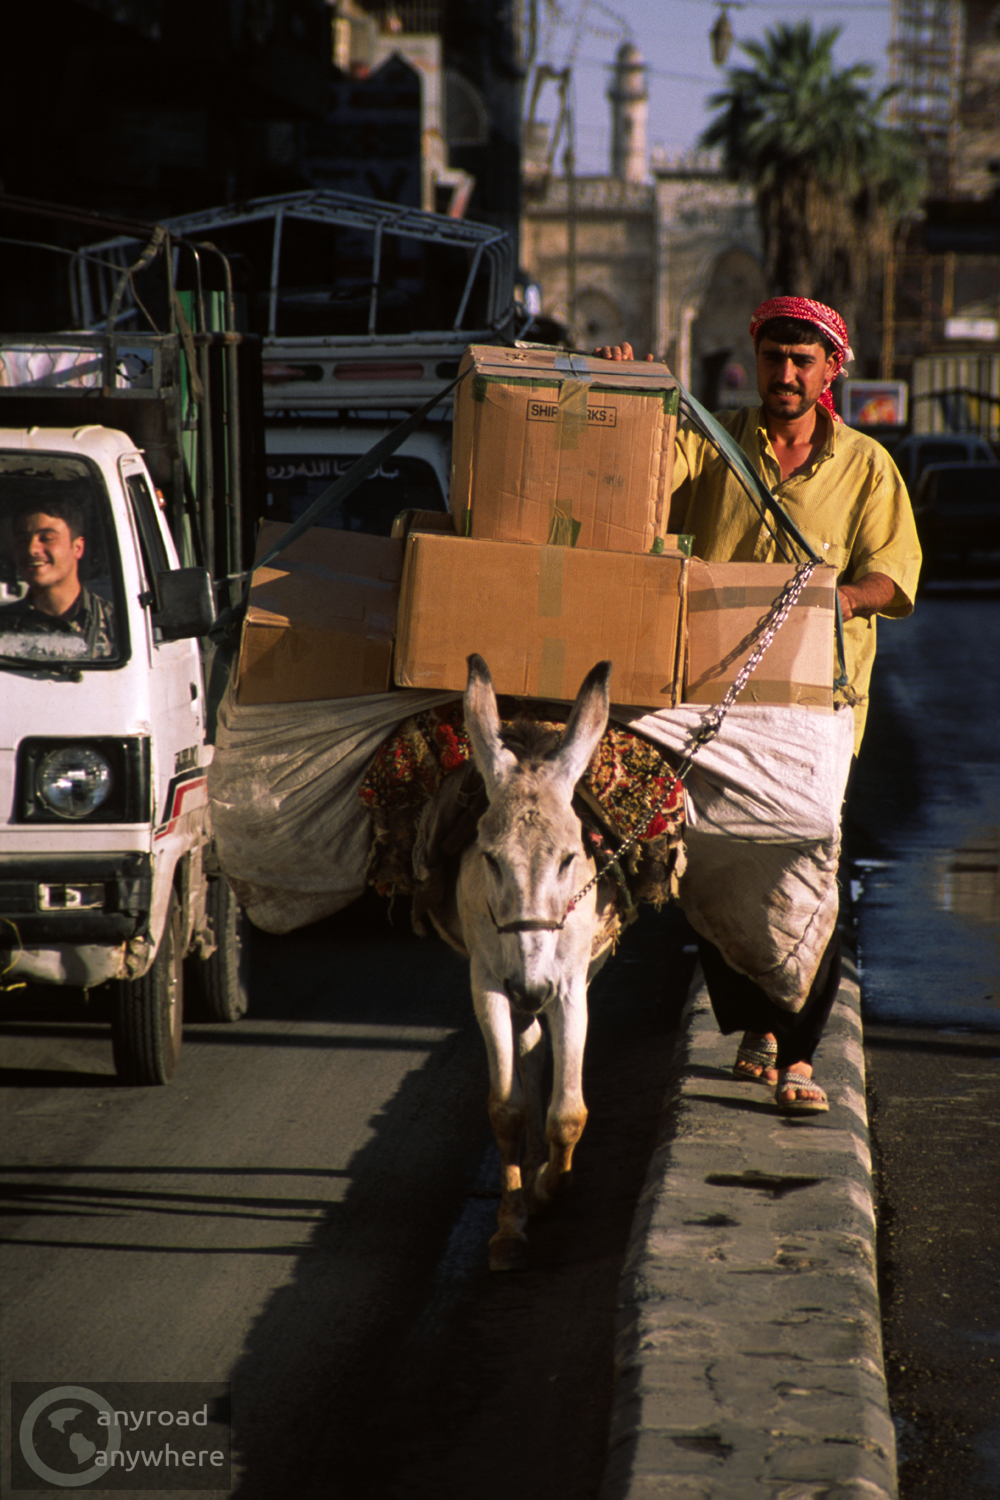 Donkey with its owner on a busy road in Aleppo